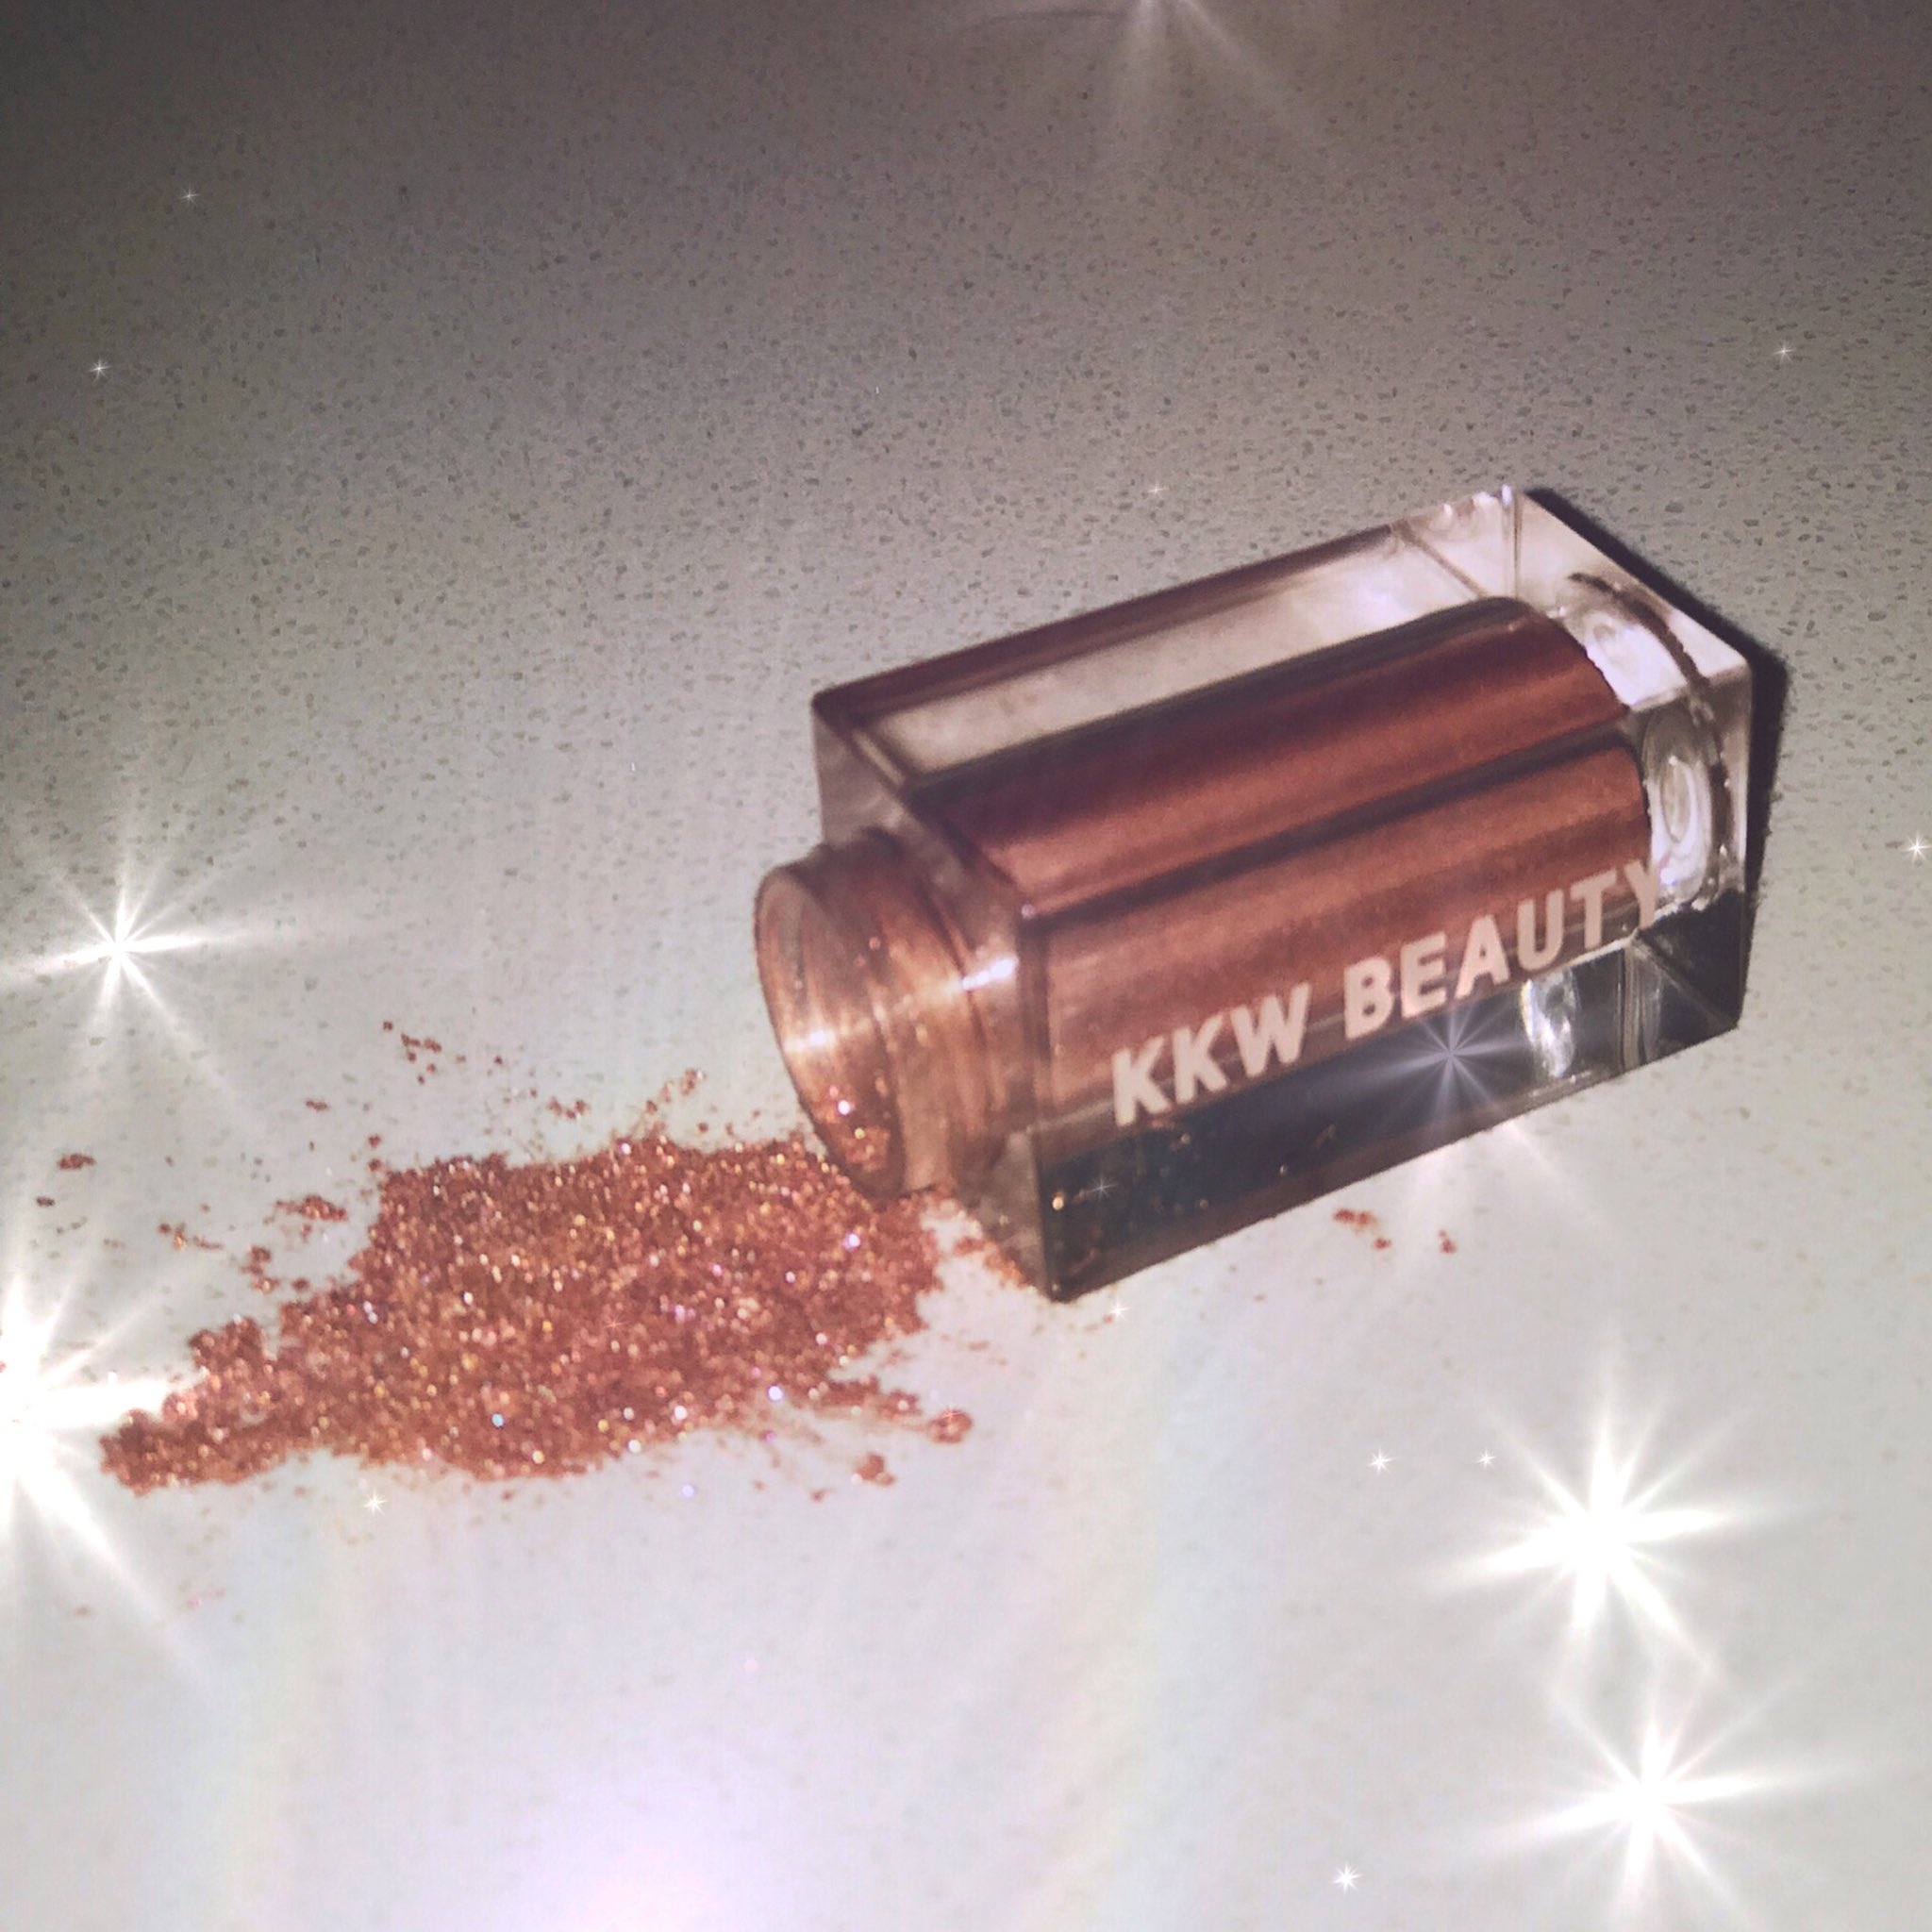 Ultralight Beams loose pigment & highlighter available now on https://t.co/aIjp1MBlpZ https://t.co/hwo9PilDXZ